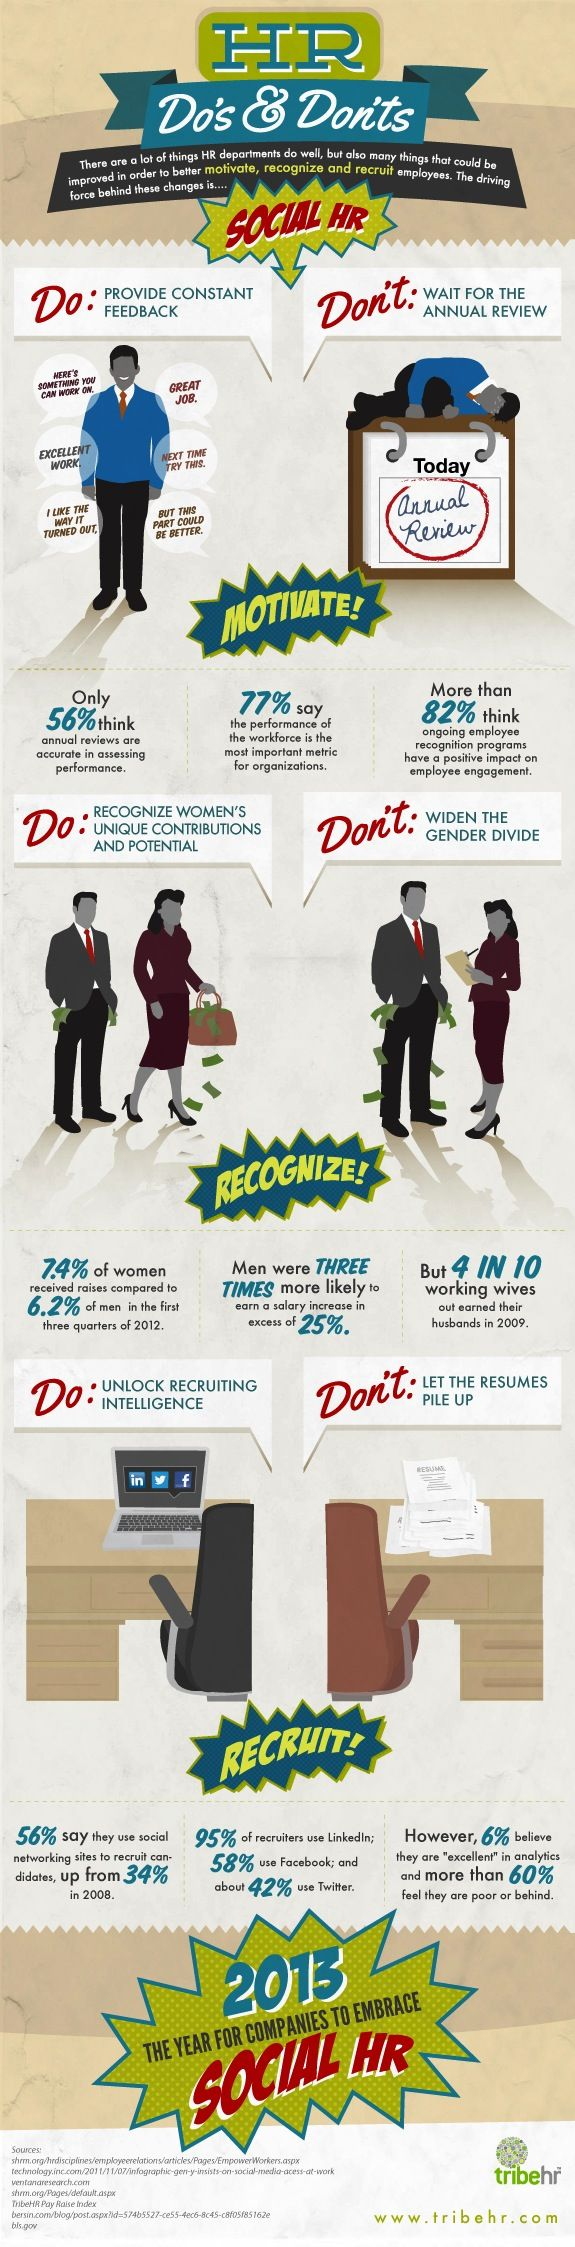 Do S Don Ts Human Resources Human Resource Management Management Infographic